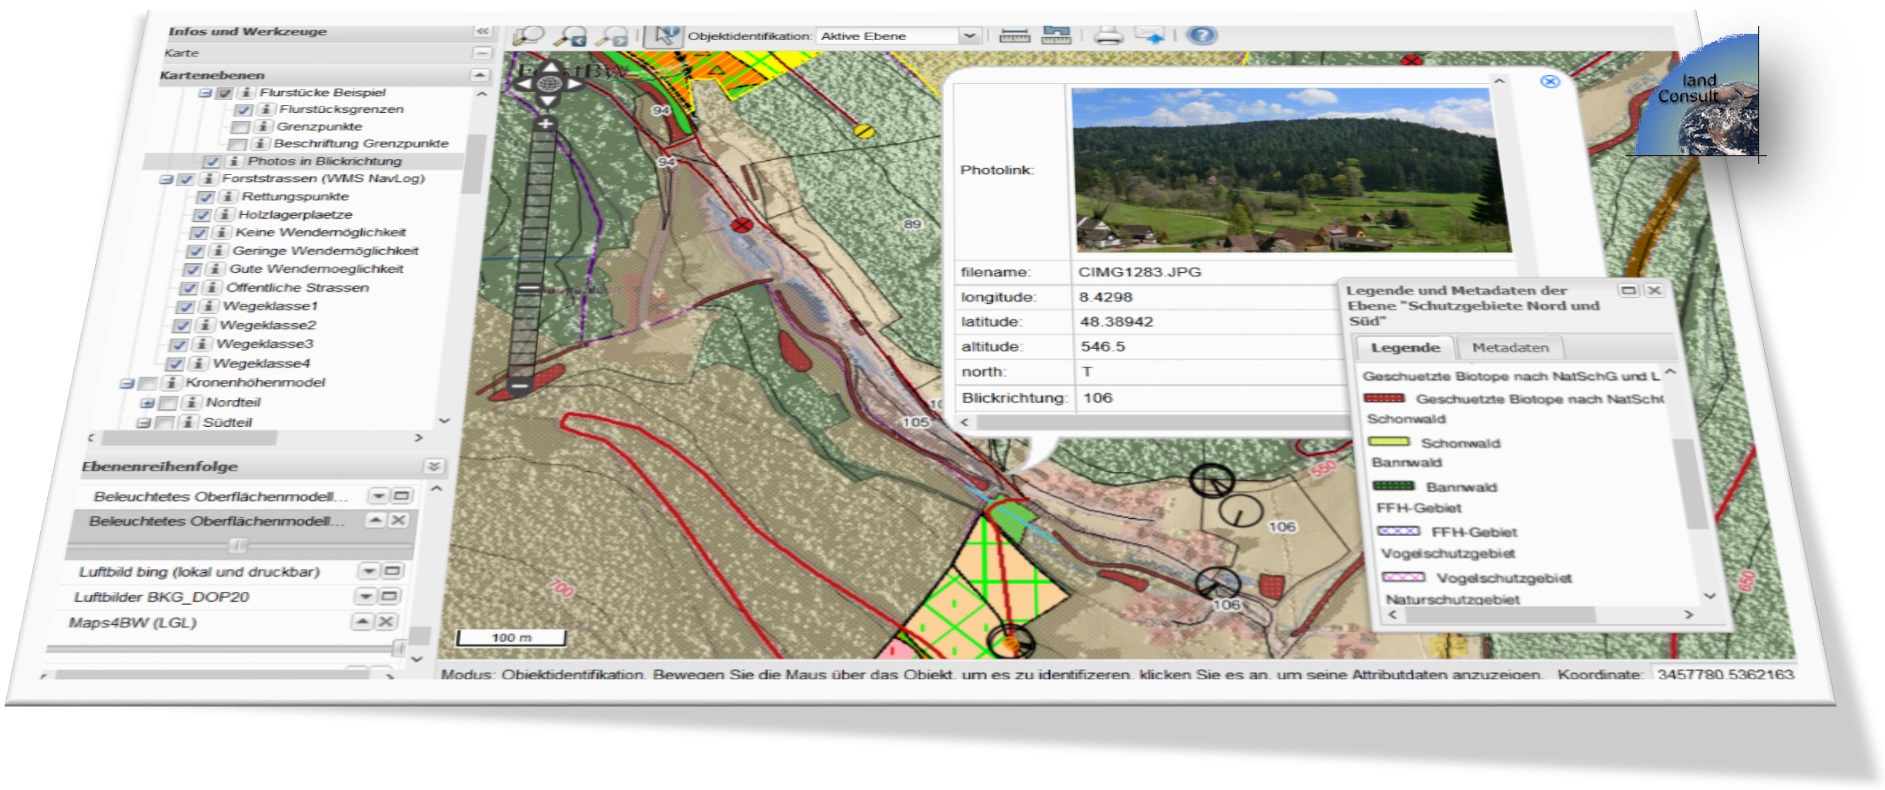 3D ForestGIS with 3D Forest Inventory Data and Web Maps - Agriculture - Forestry